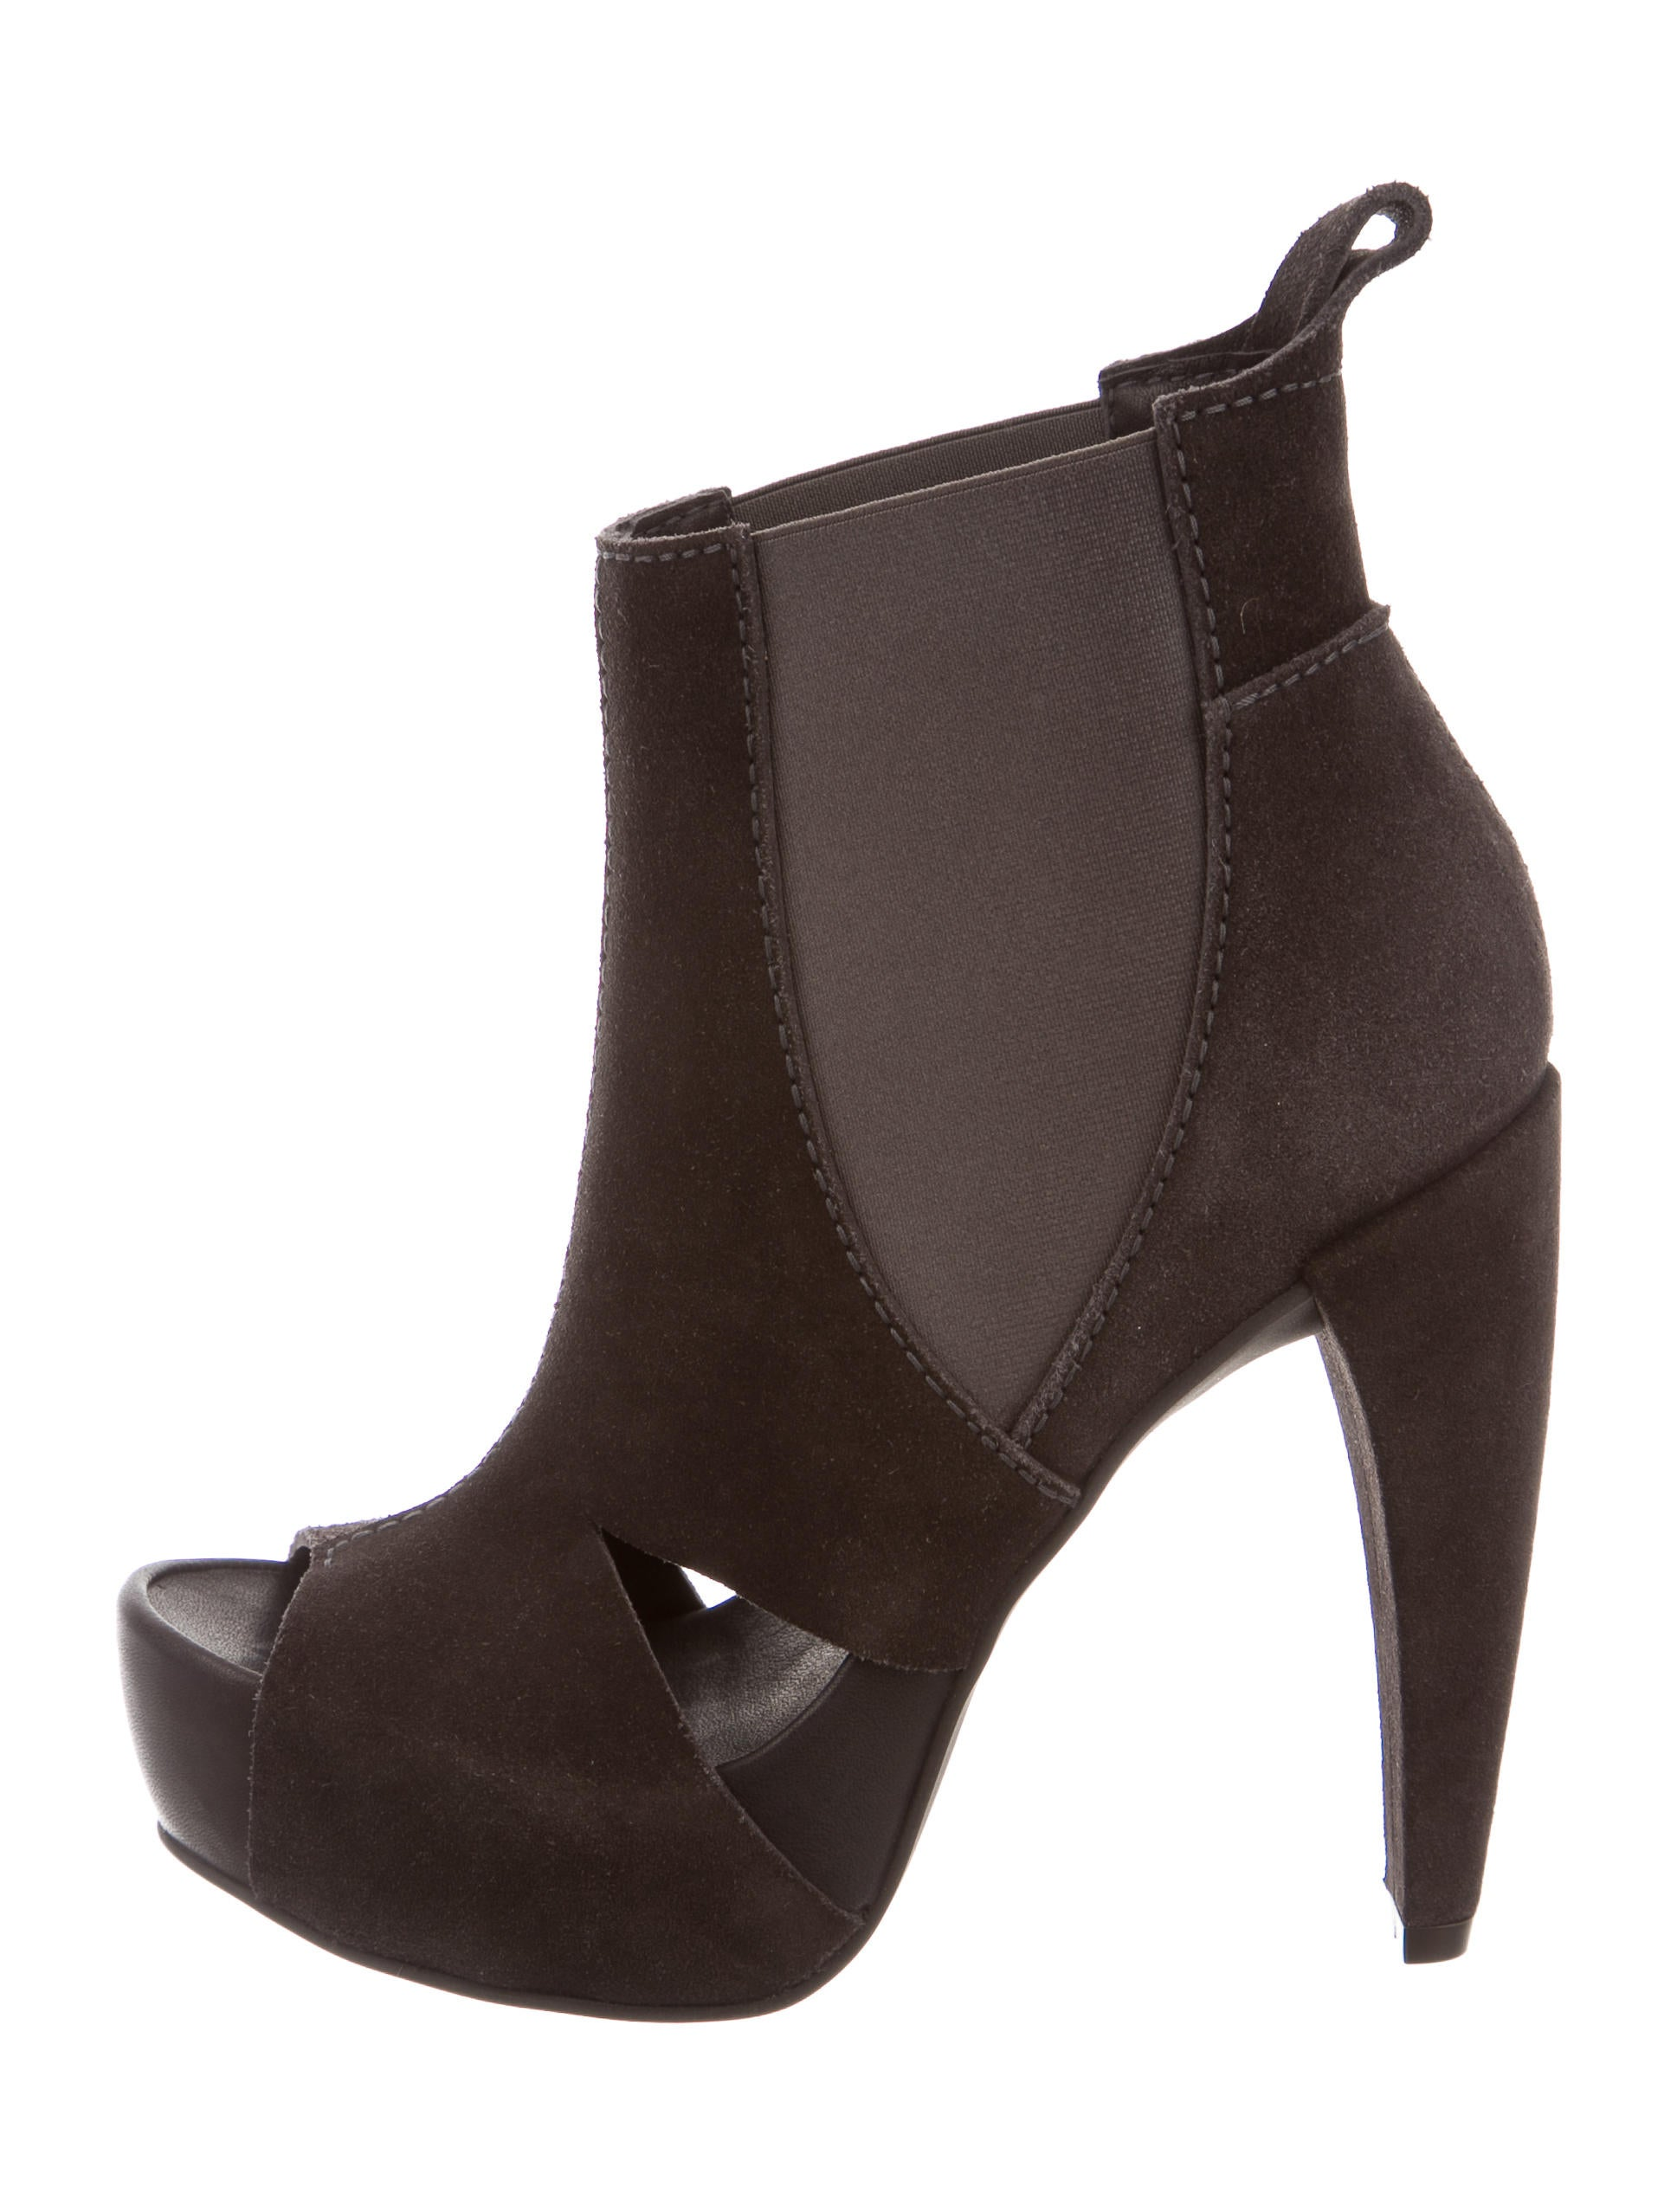 pedro garcia suede cutout ankle boots shoes ped22437